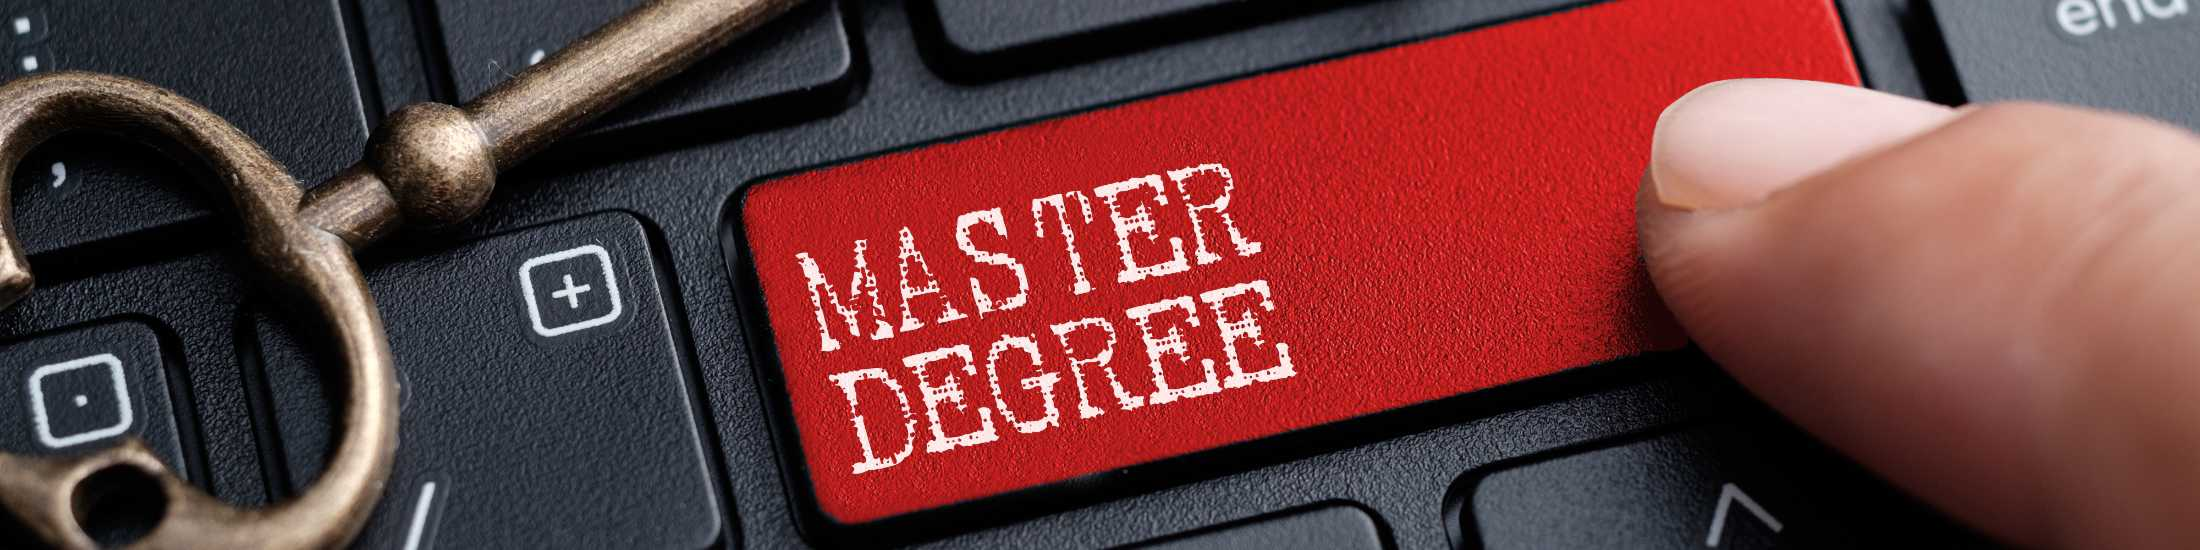 Graduate Degrees Offered